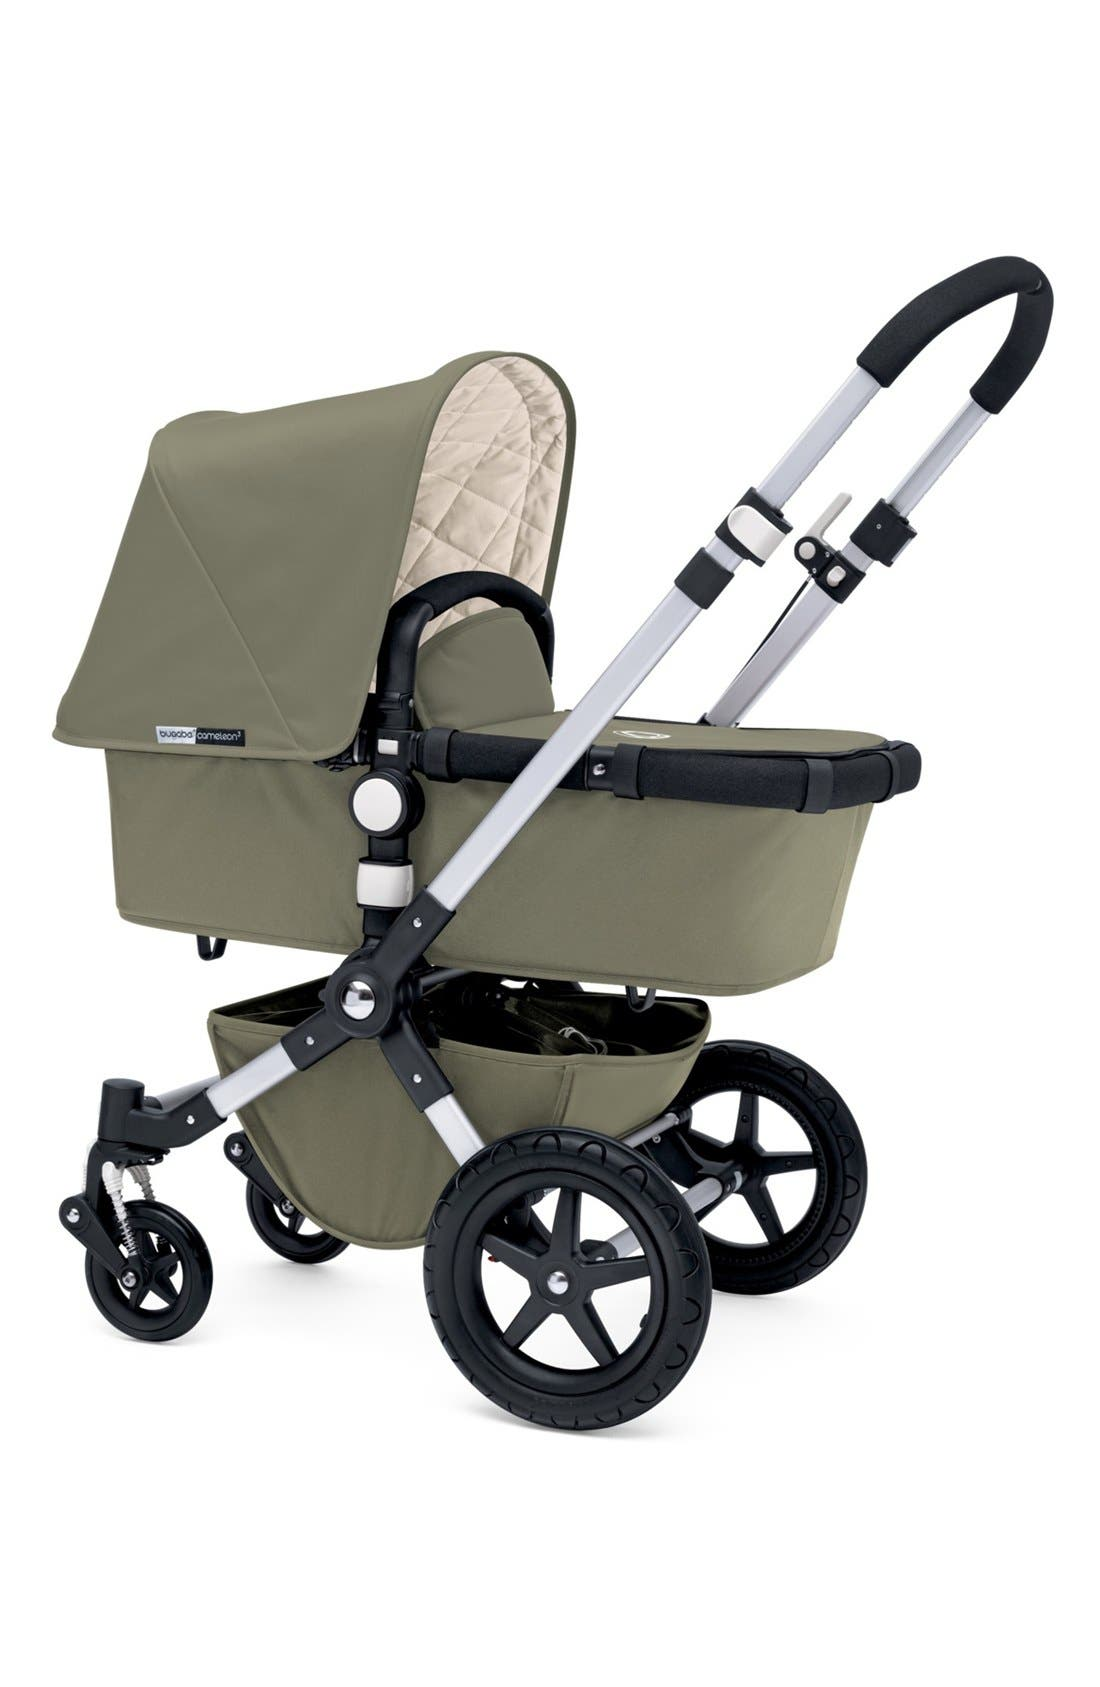 Alternate Image 1 Selected - Bugaboo 'Cameleon³' Stroller with Fabric Set (Classic Edition)